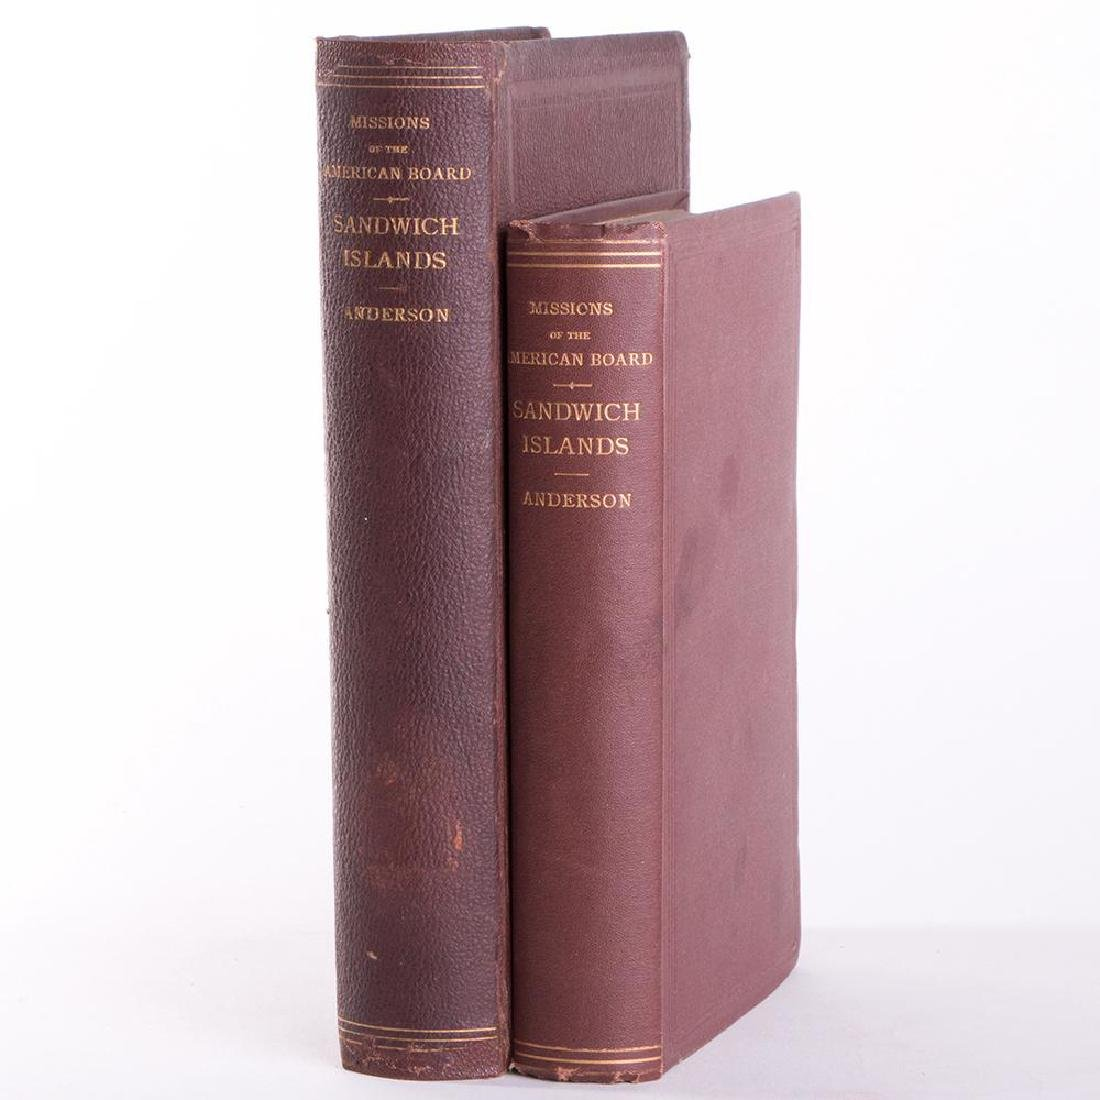 2 Editions, History of the Sandwich Islands